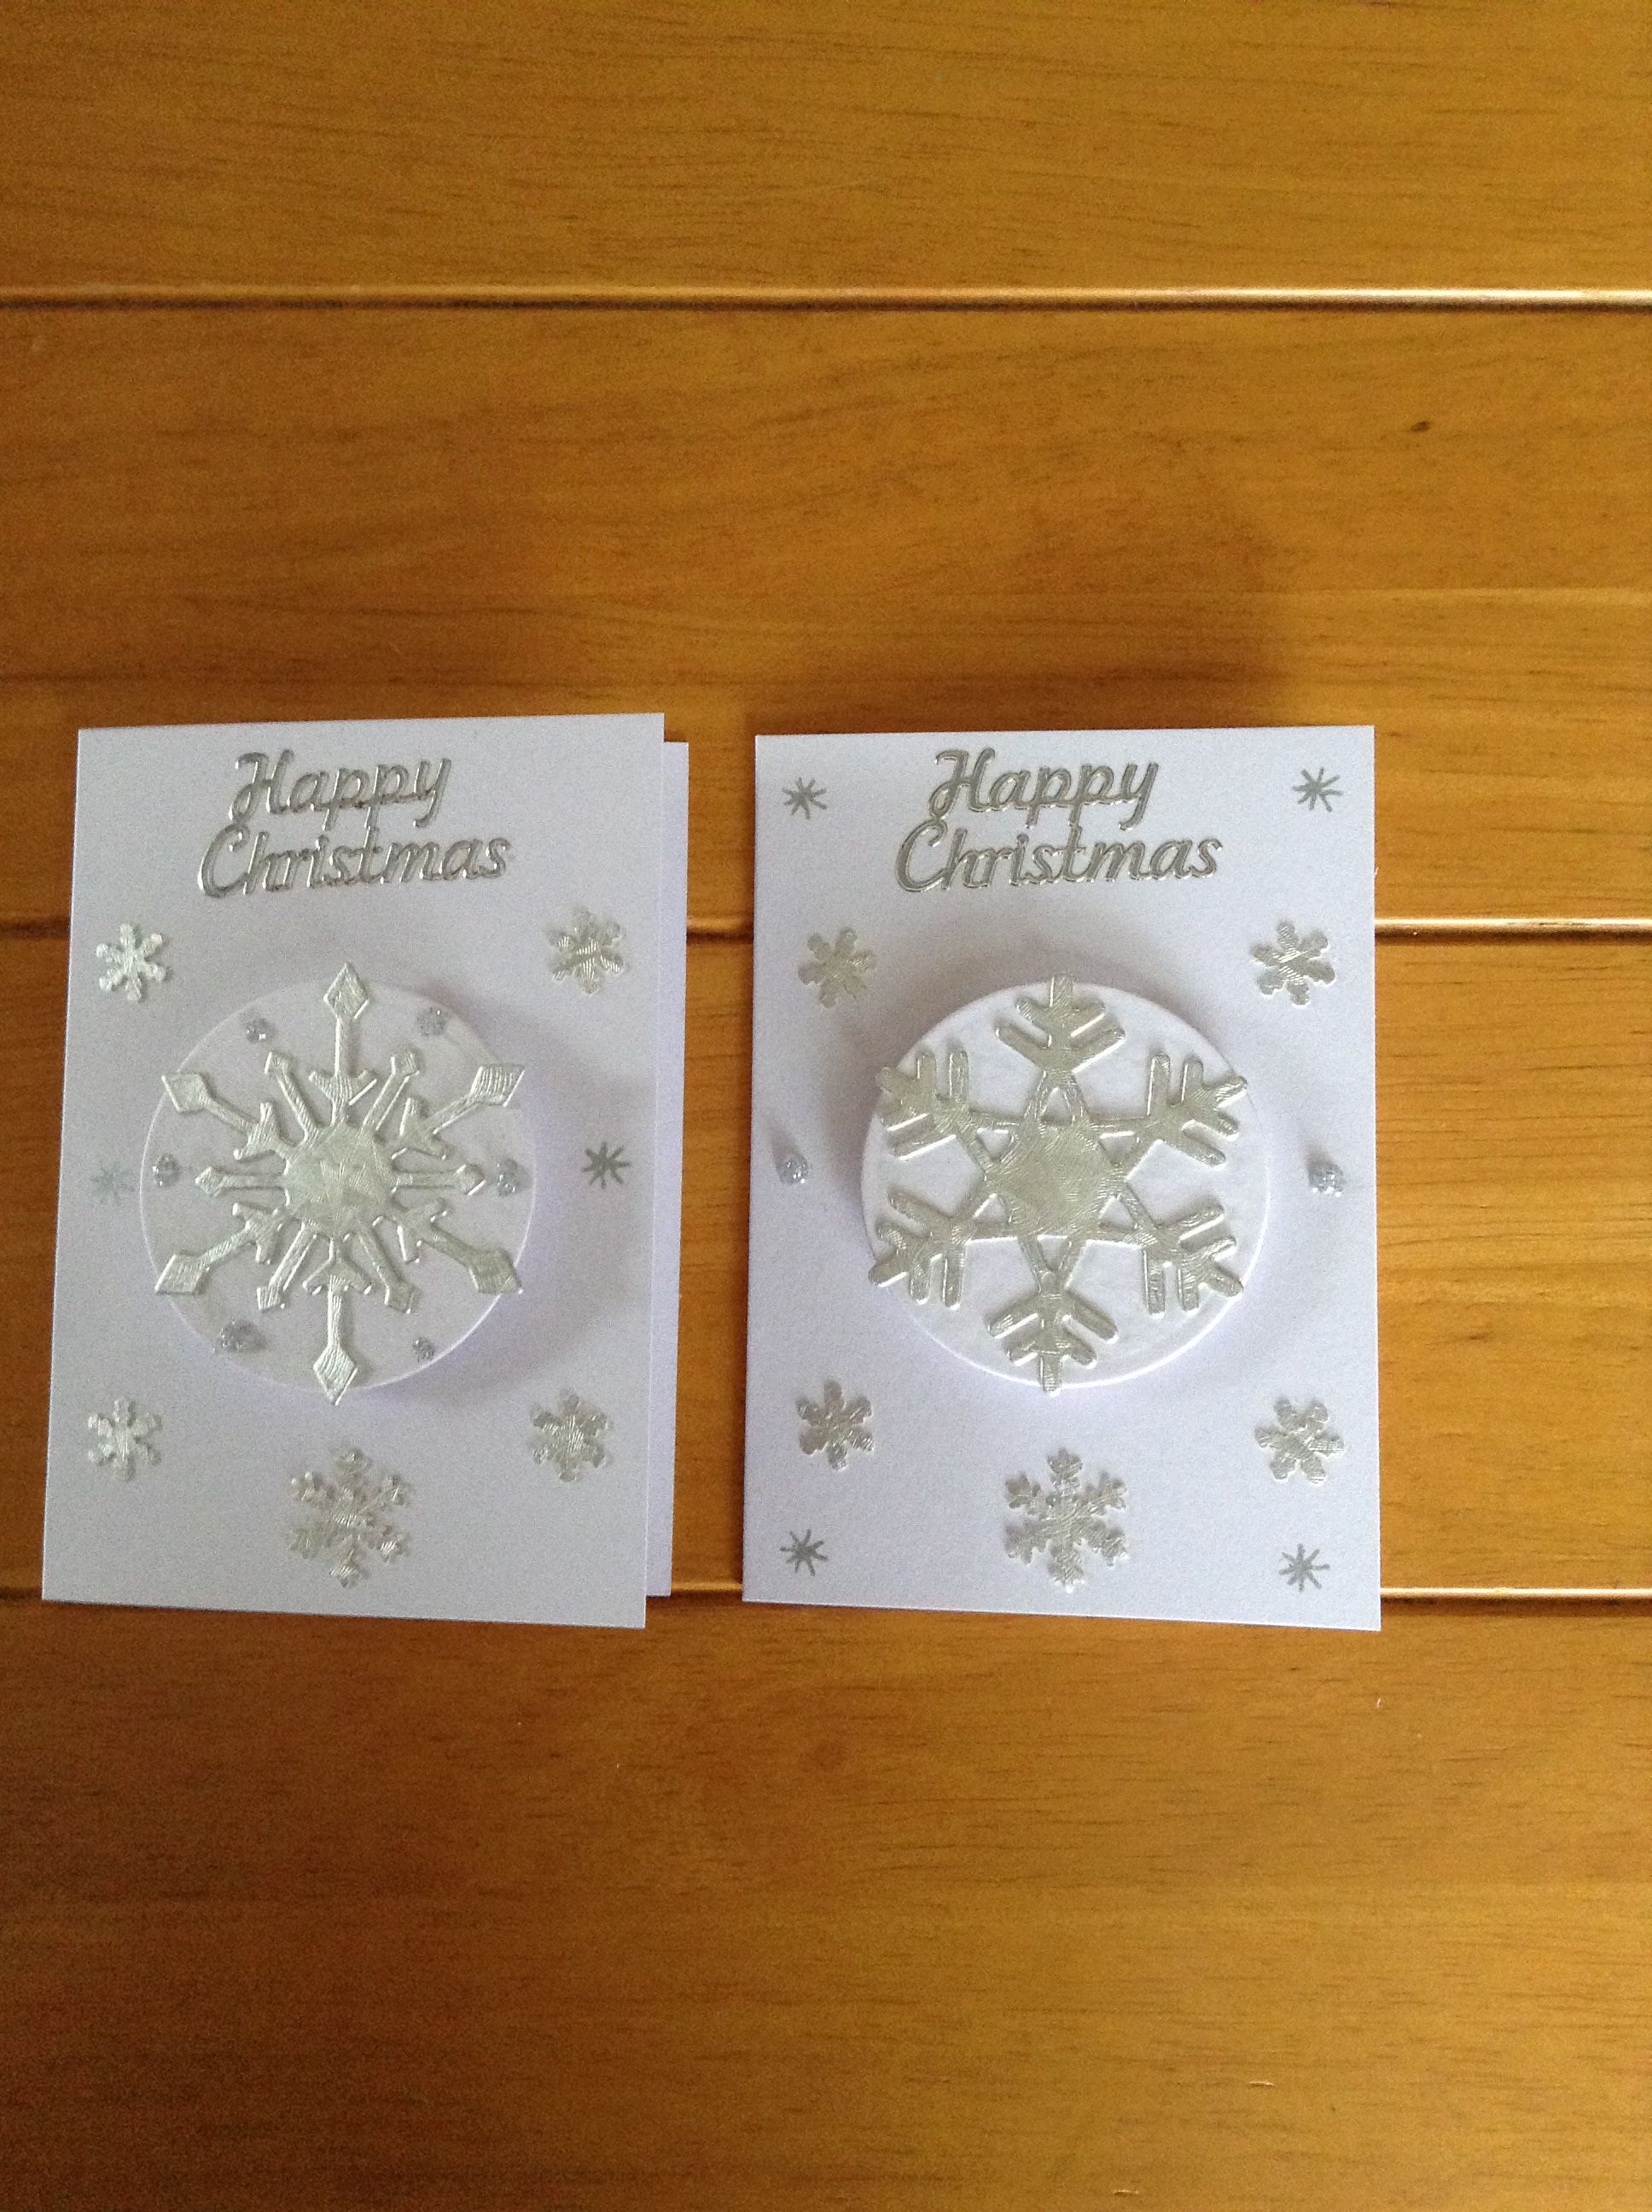 A7 size Christmas cards